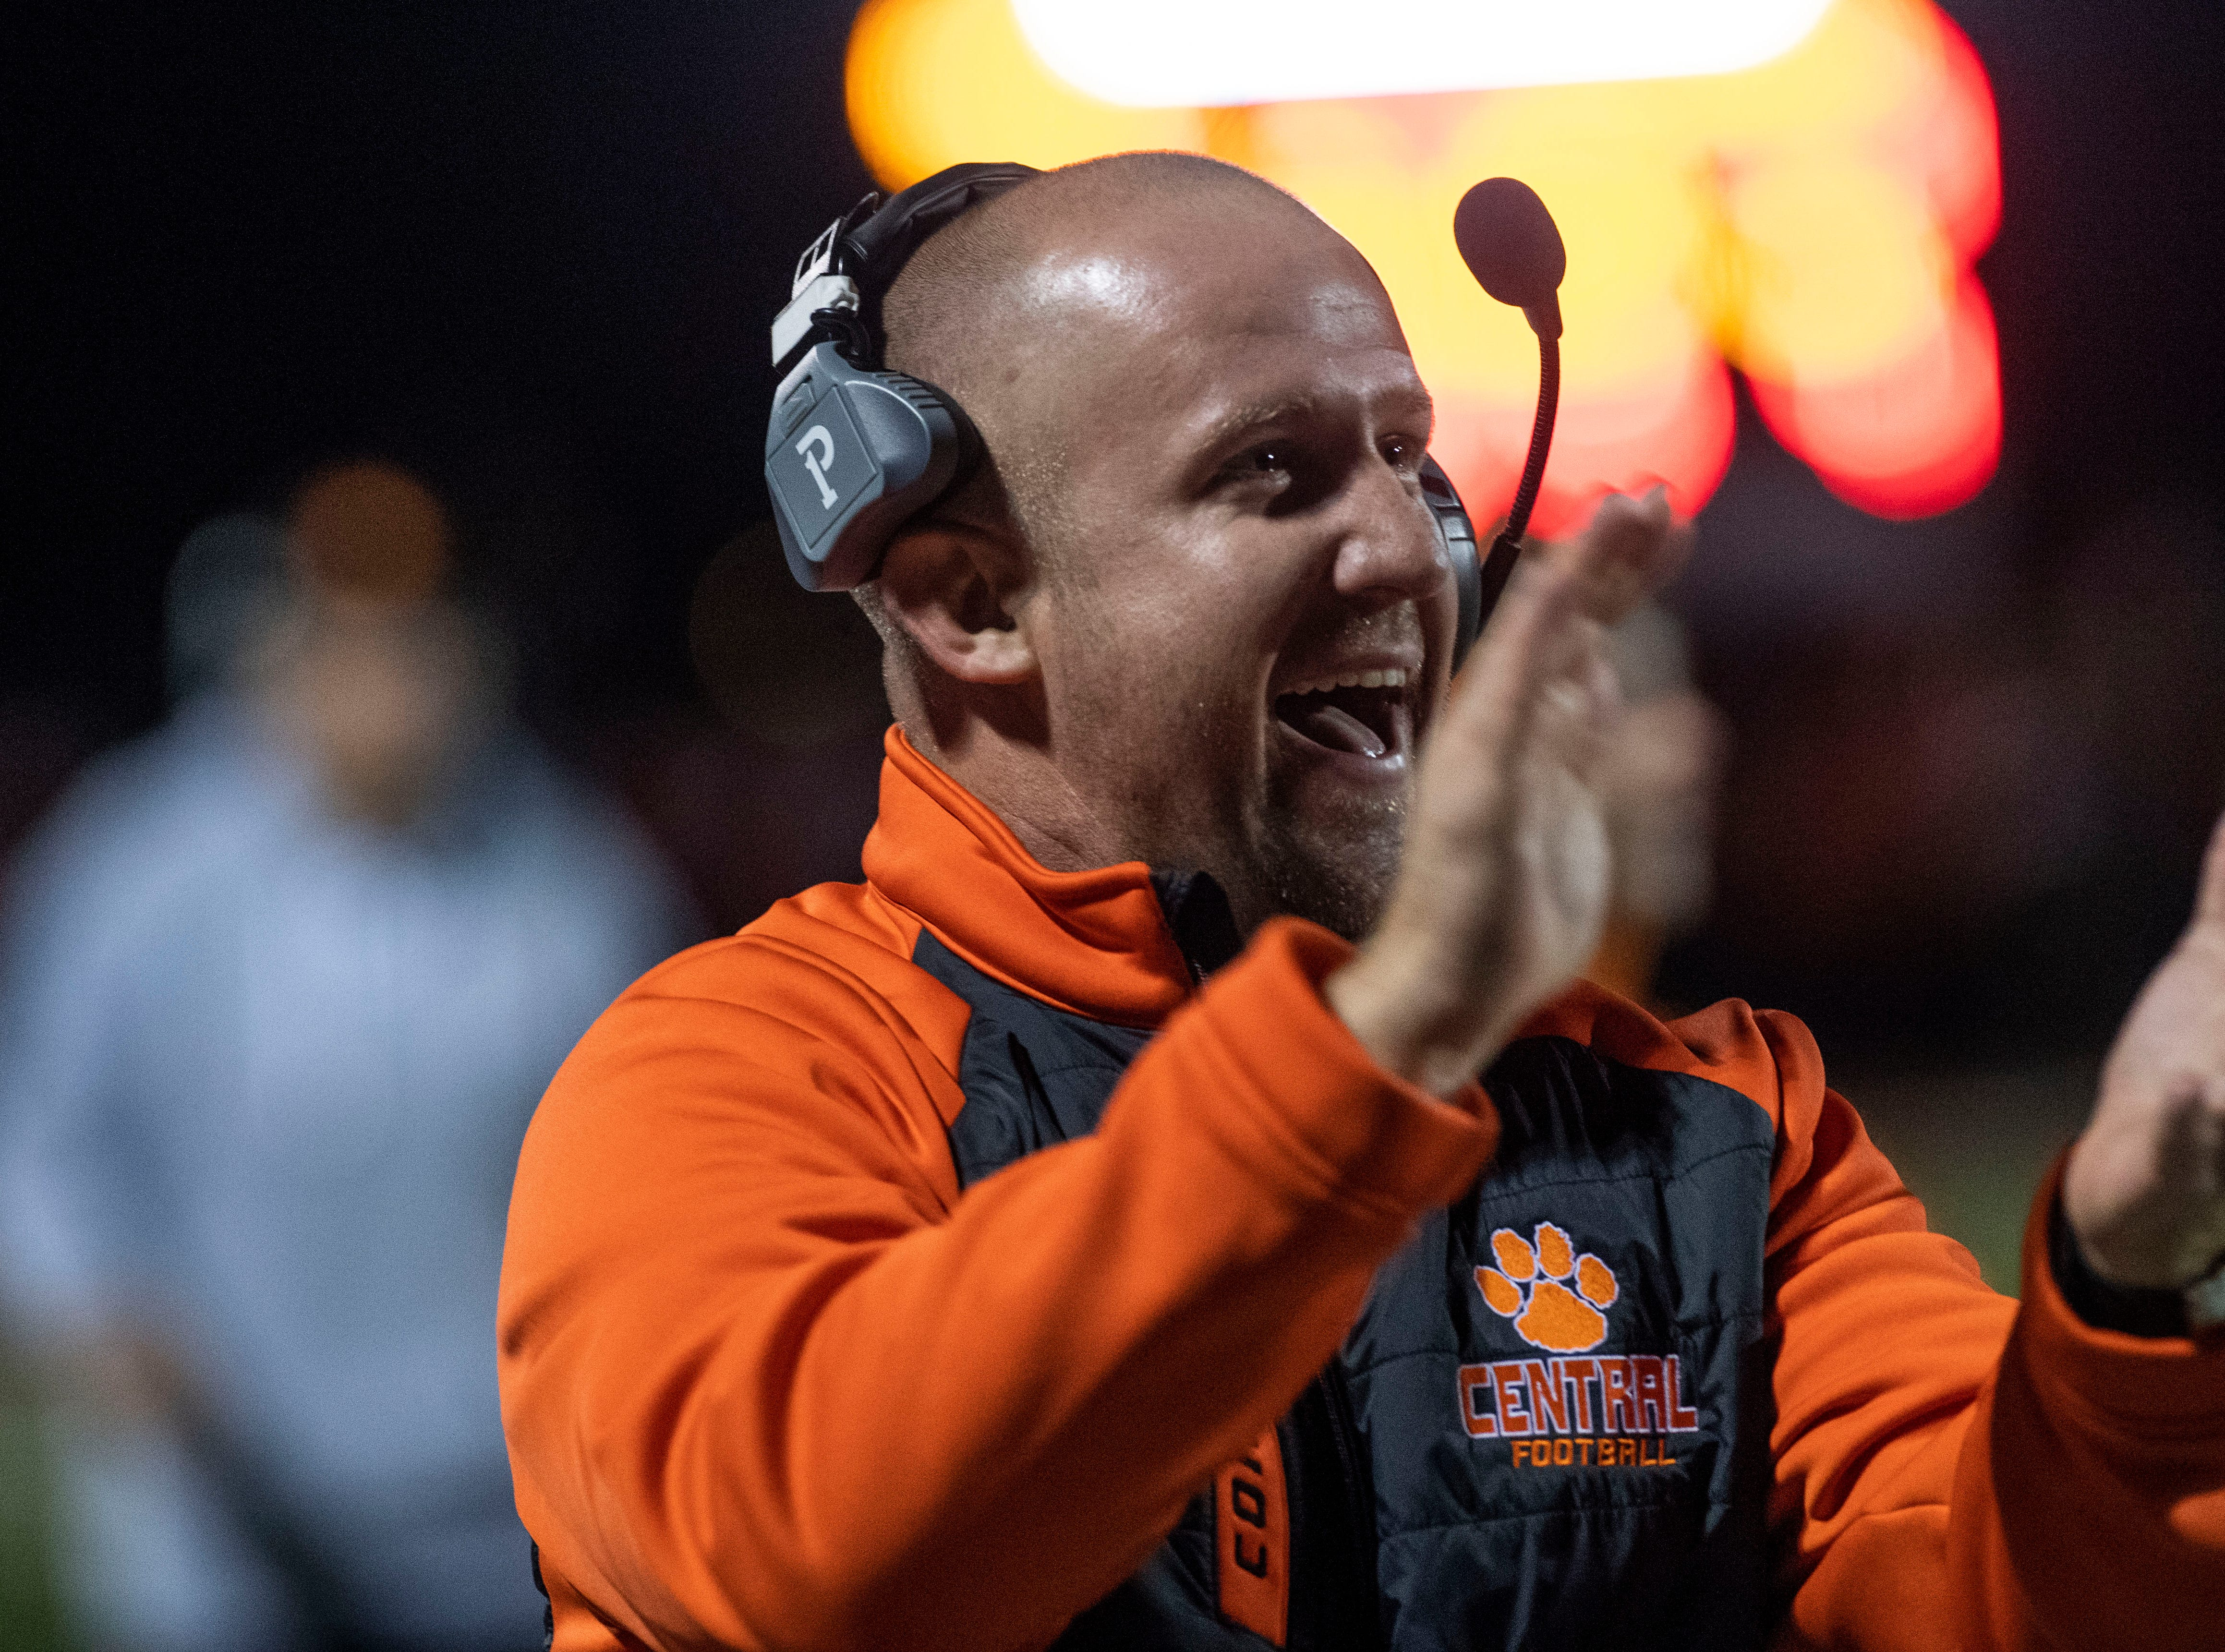 Central York head coach Josh Oswalt celebrates after Will Van Dyke's 95-yard touchdown during a YAIAA Division I football game at Northeastern High School on Friday, Oct. 12, 2018. The Central York Panthers beat the Northeastern Bobcats, 44-7.